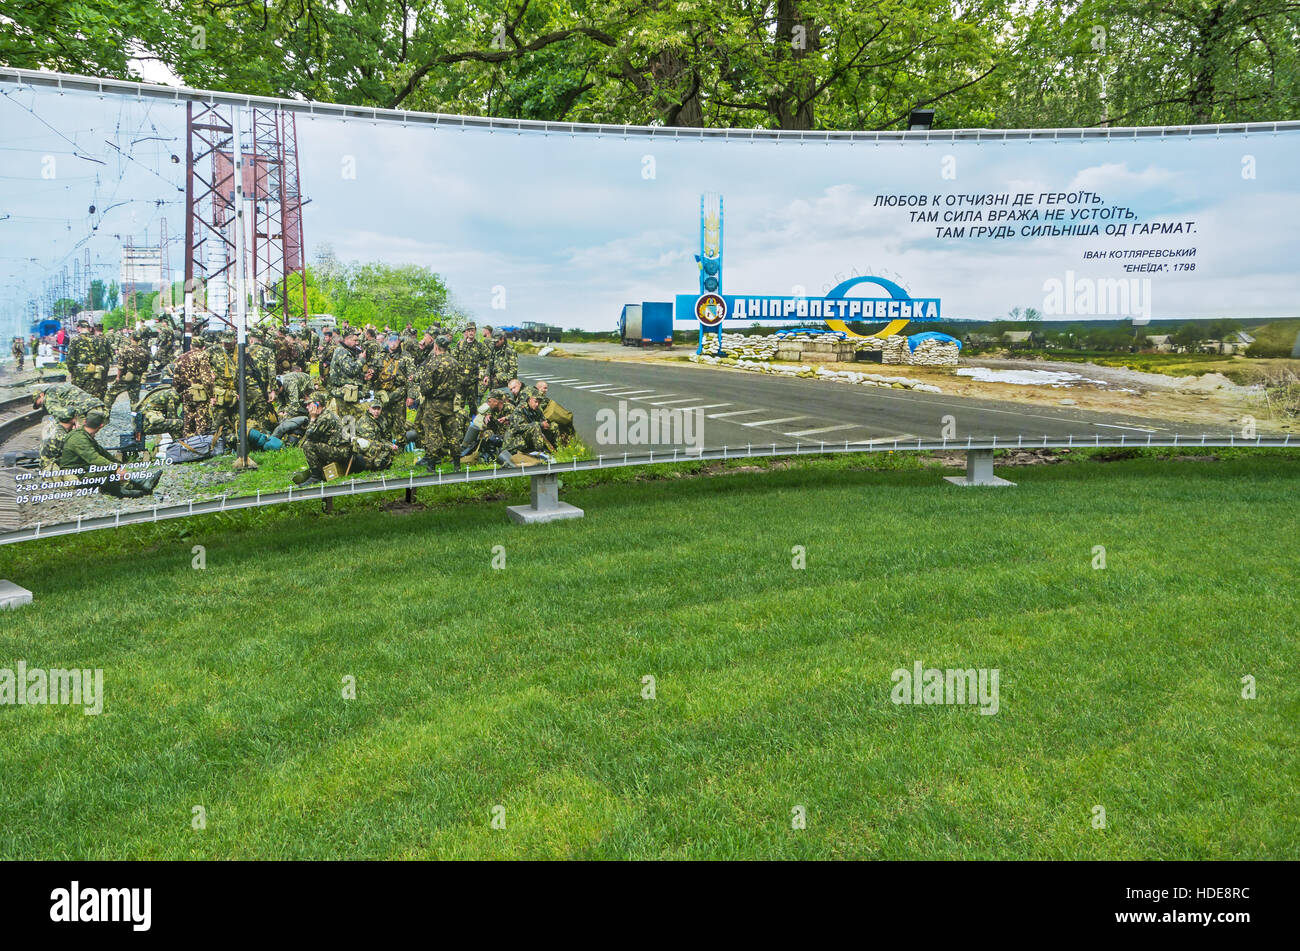 Dnepropetrovsk, Ukraine - May 19, 2016: Open air museum dedicated to war in the Donbass. Panoramic image of the - Stock Image